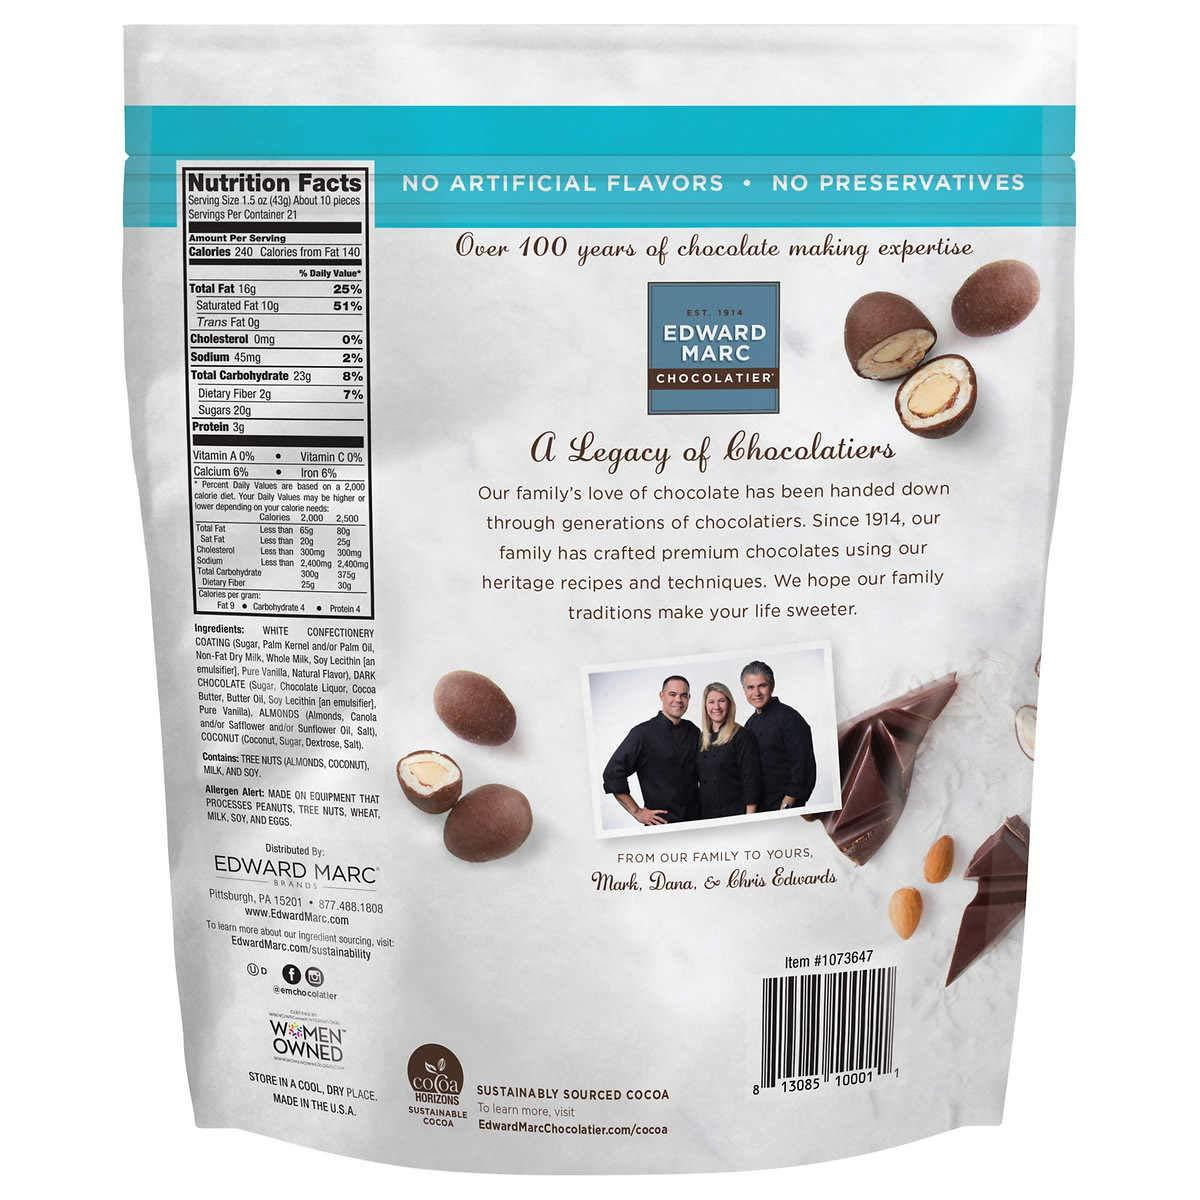 Edward Marc Chocolatier Almonds Edward Marc Chocolatier